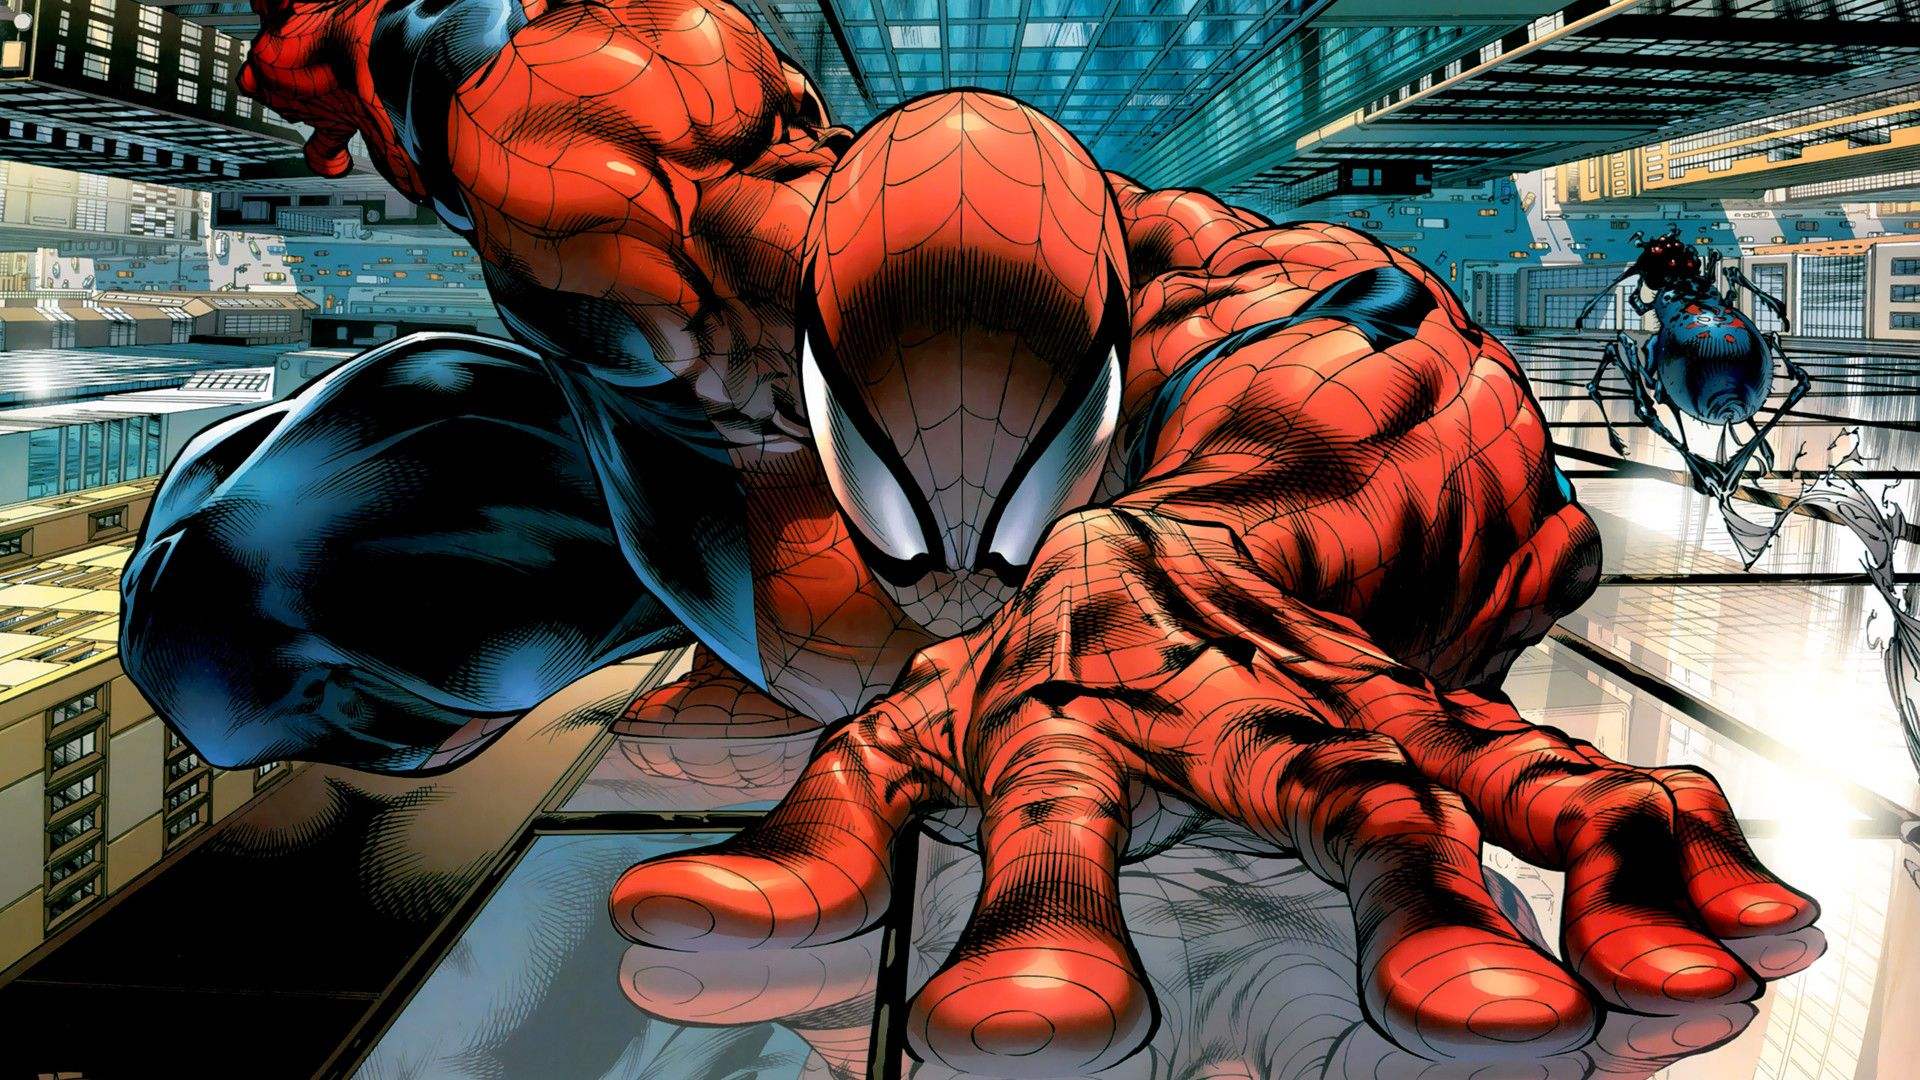 Best Spiderman Comic Wallpaper Designs You Cannot Miss